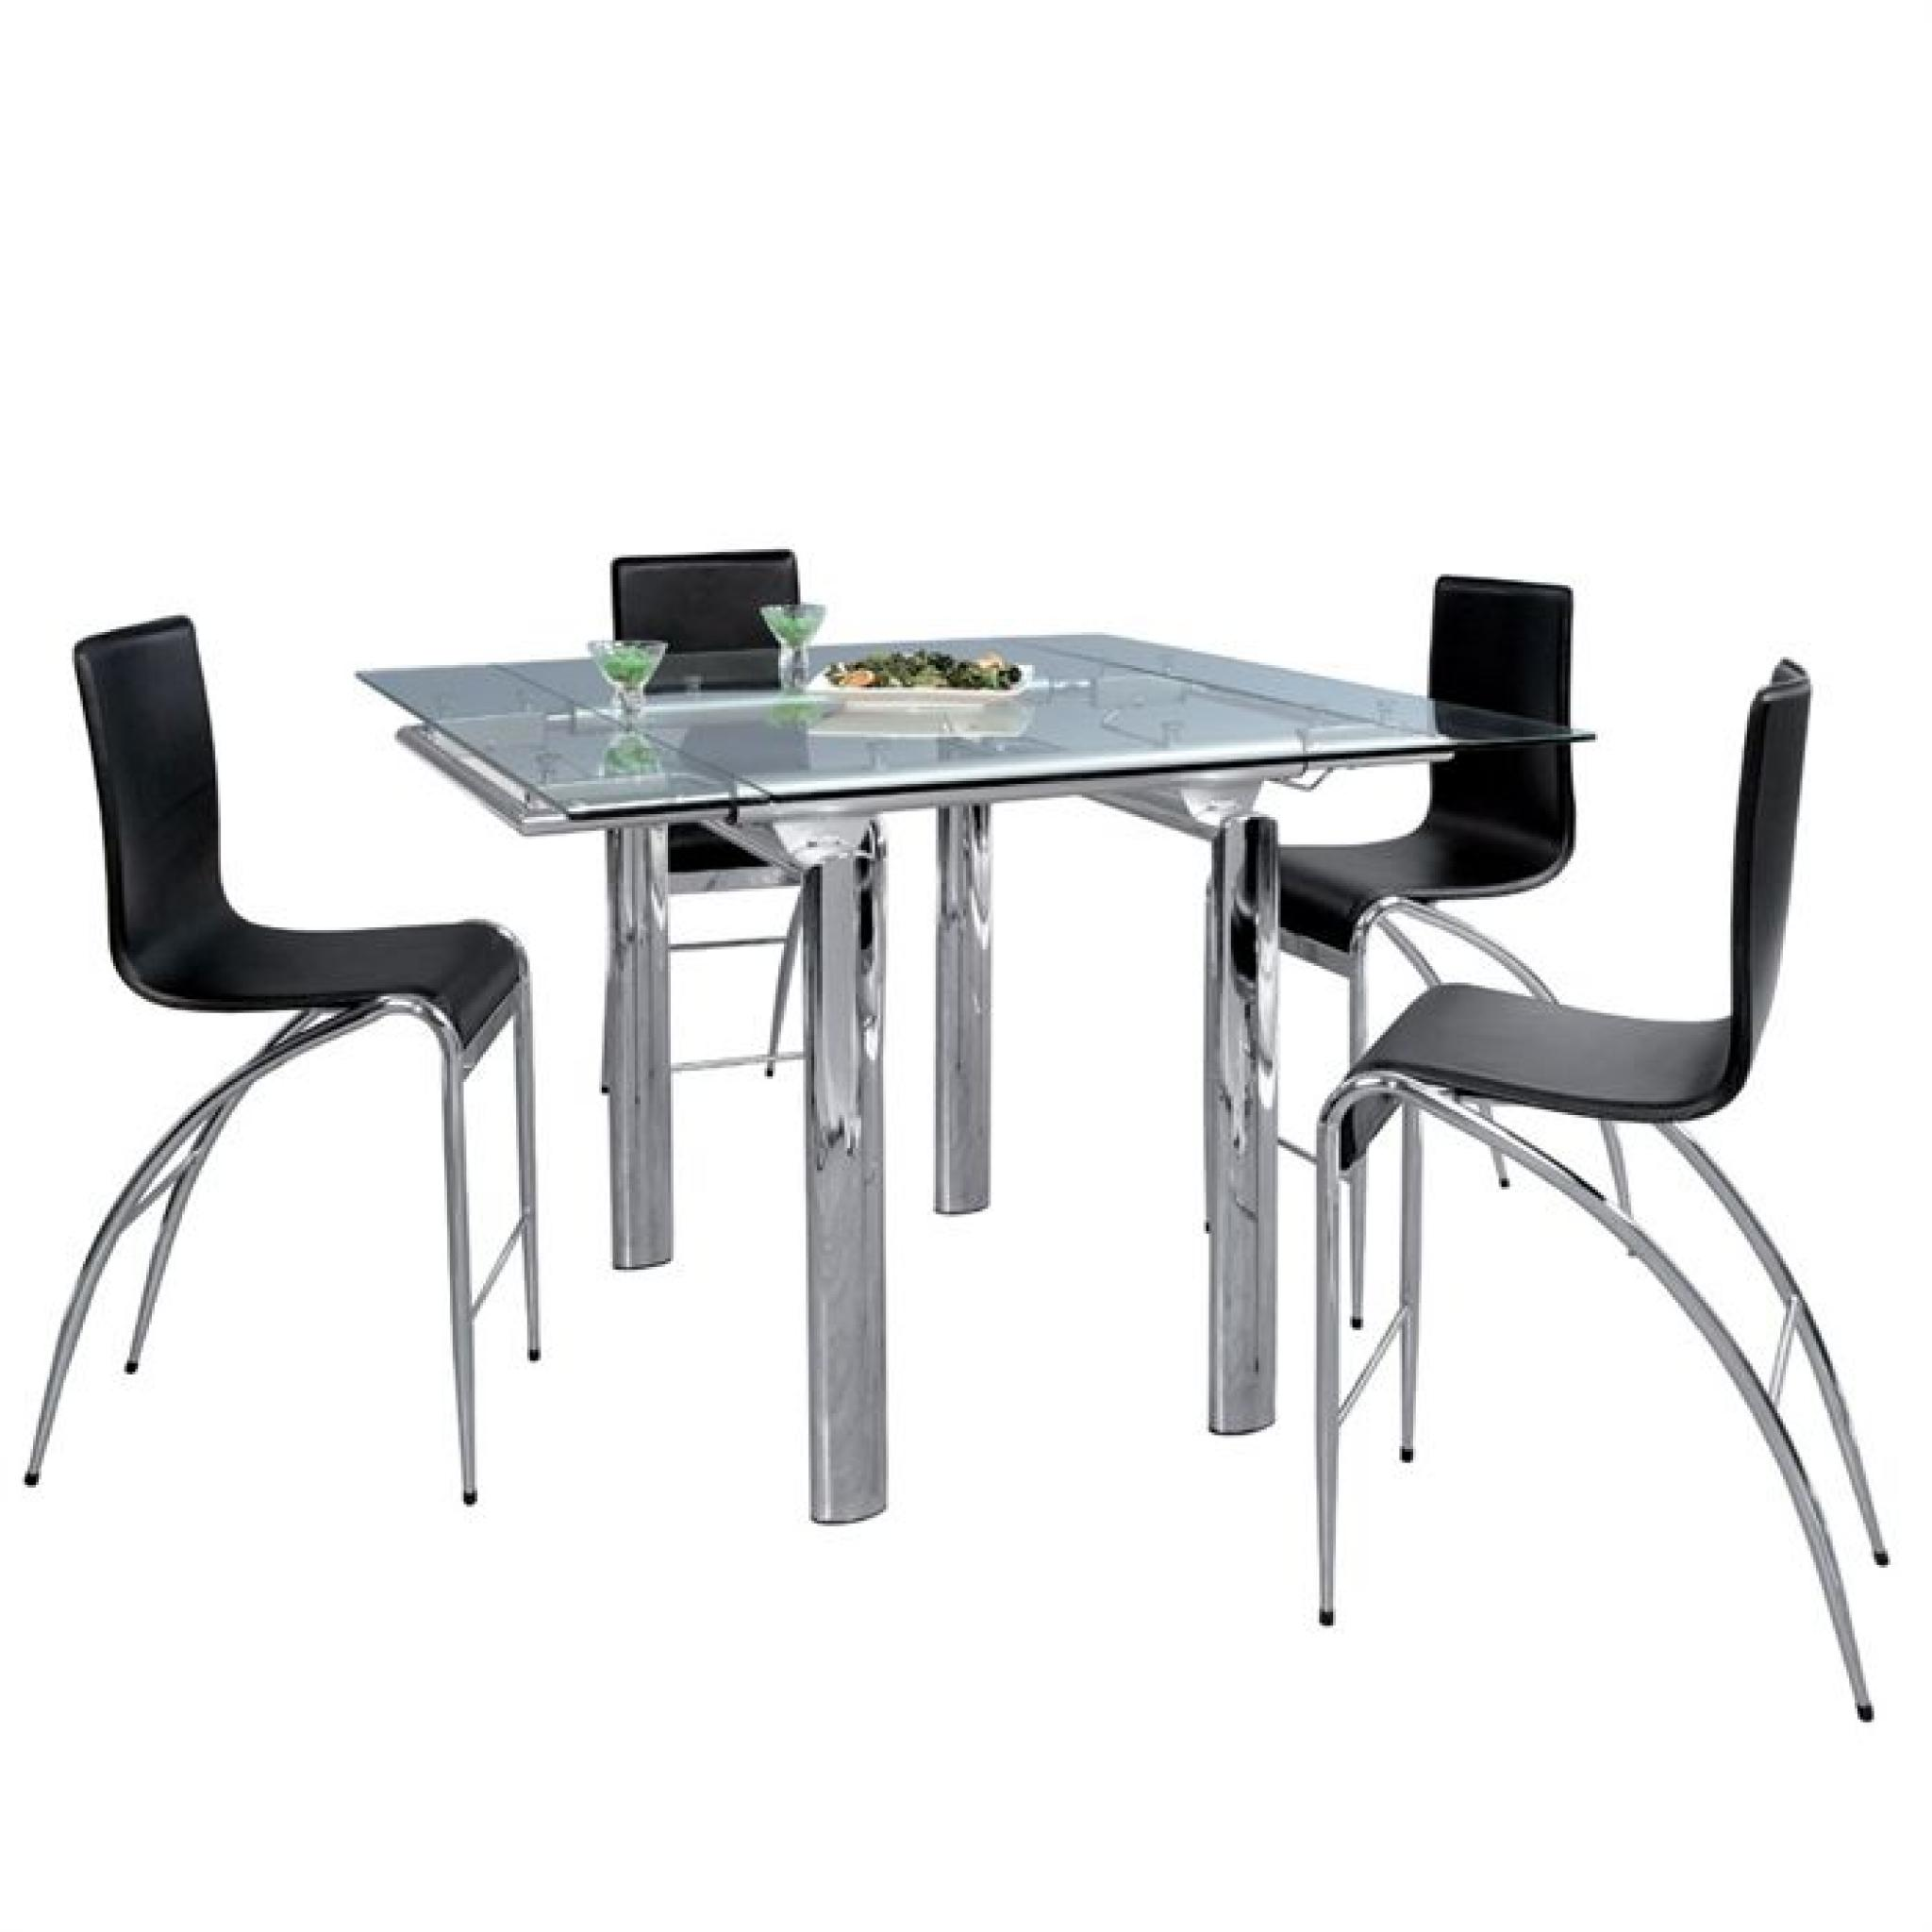 Ditta table manger haute chrome verre achat vente for Salle a manger table haute